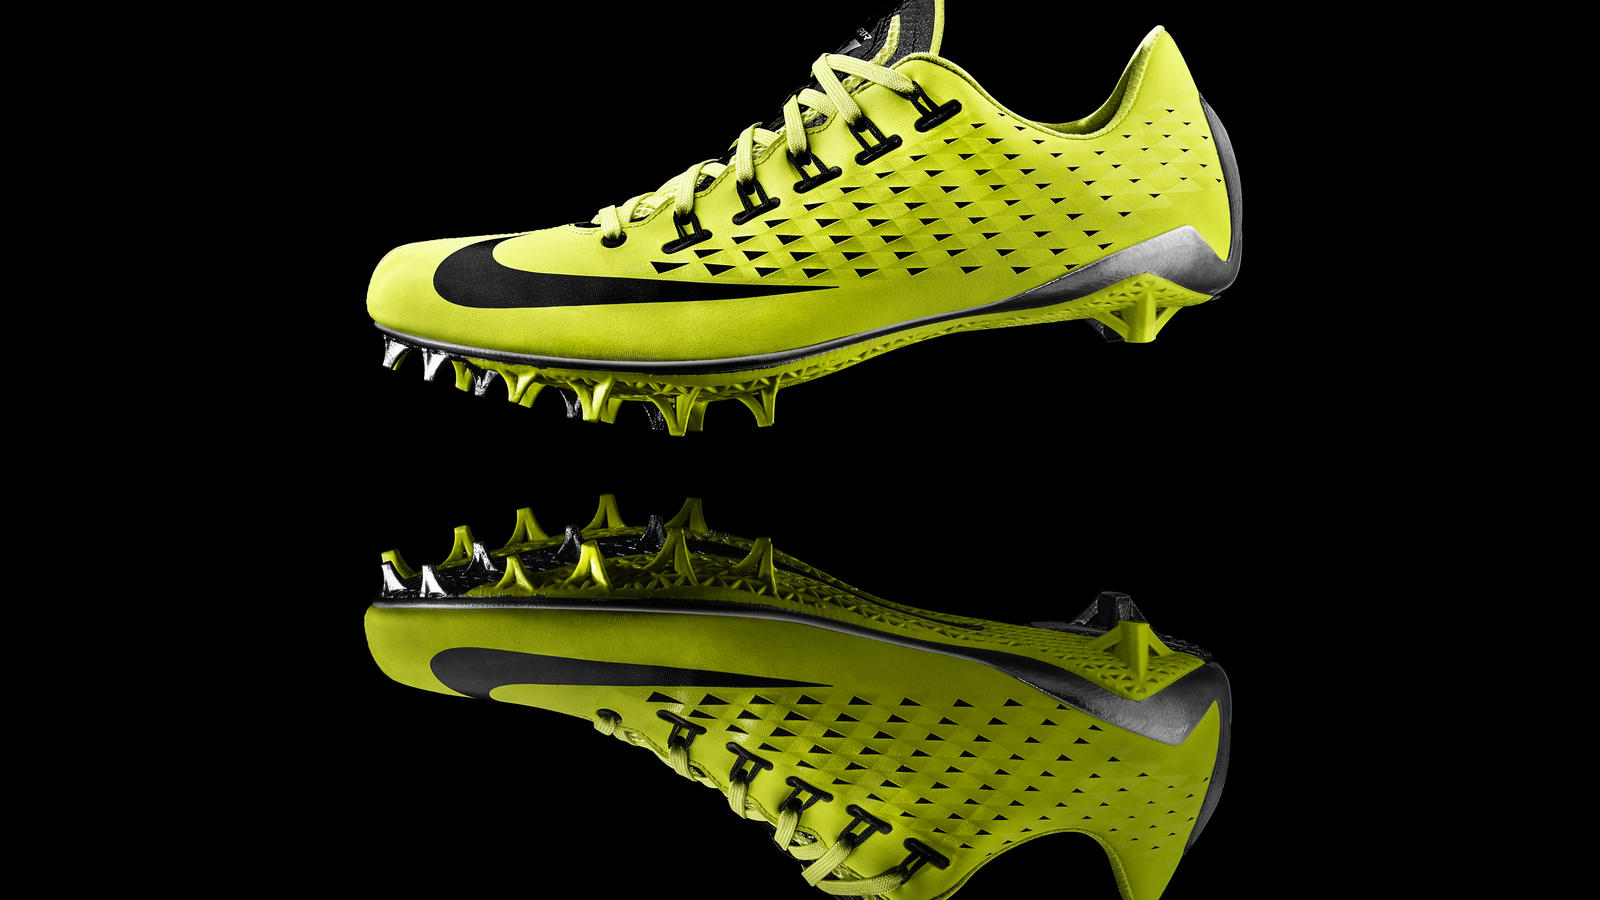 13-150_Nike_Football_Profile-02d